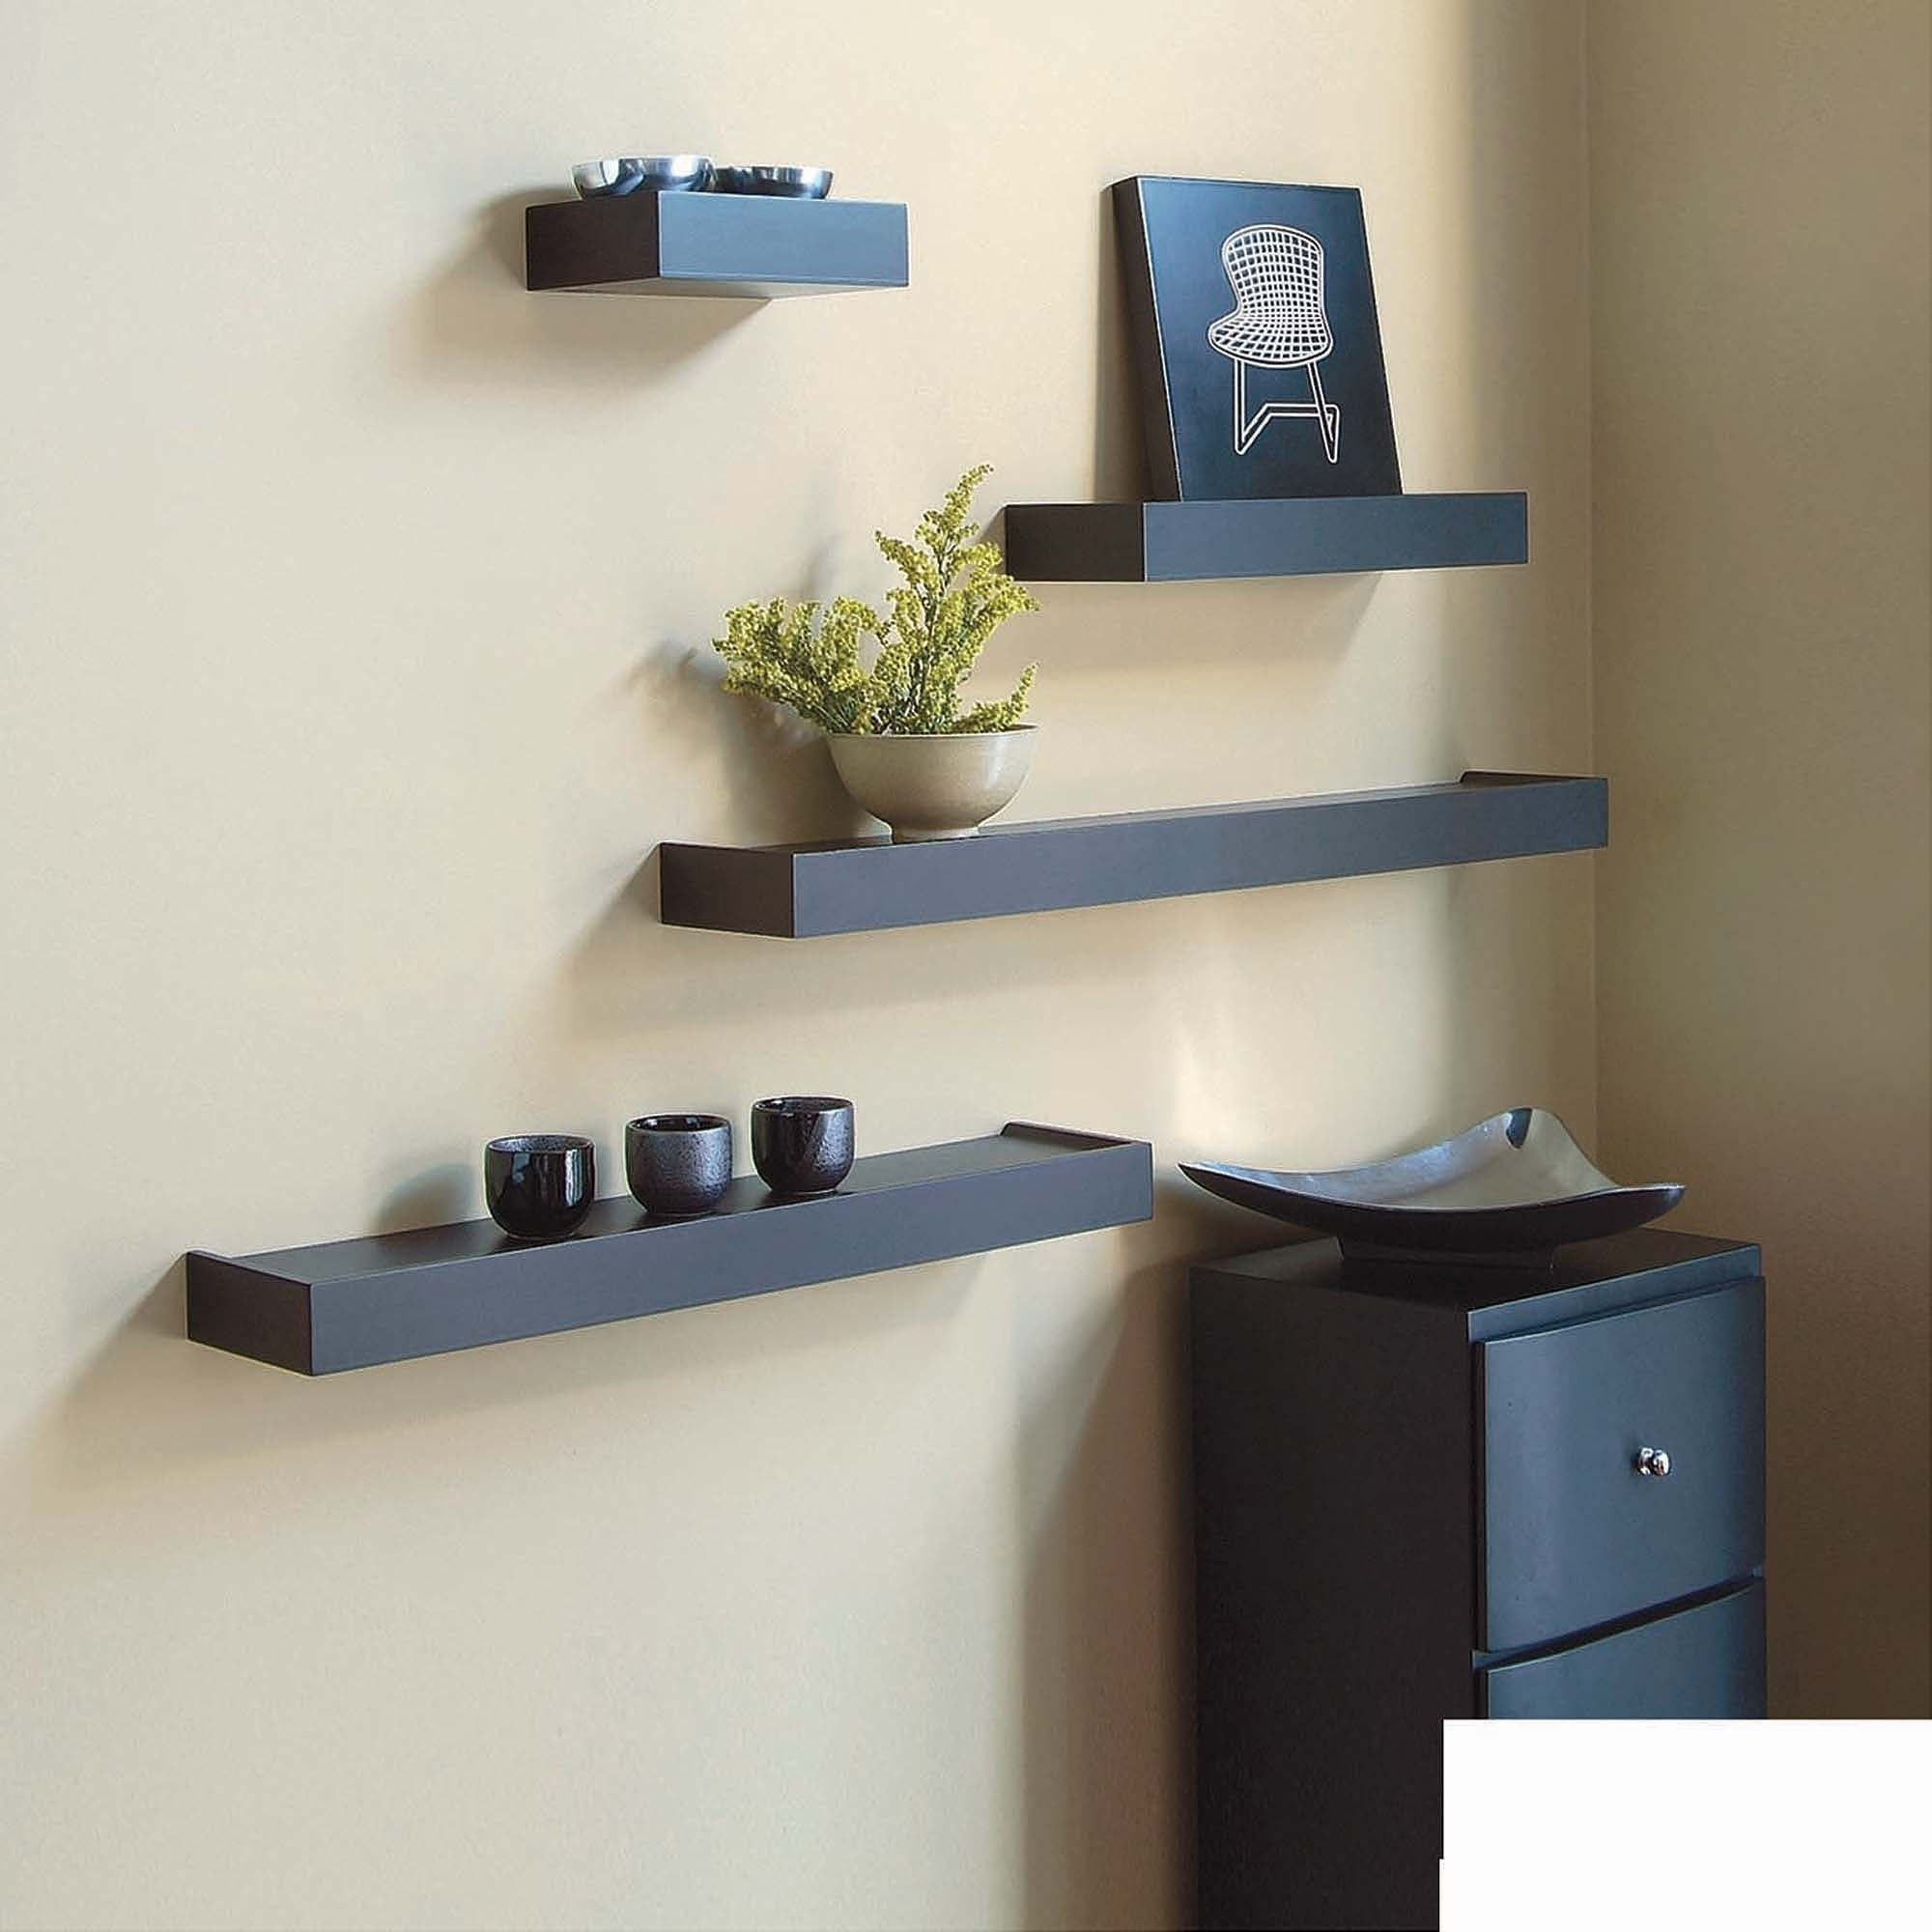 Kiera Grace Vertigo Set Of 4 Espresso Wall Shelves 6 12 20 With Regard To Wall Shelves (Image 9 of 15)